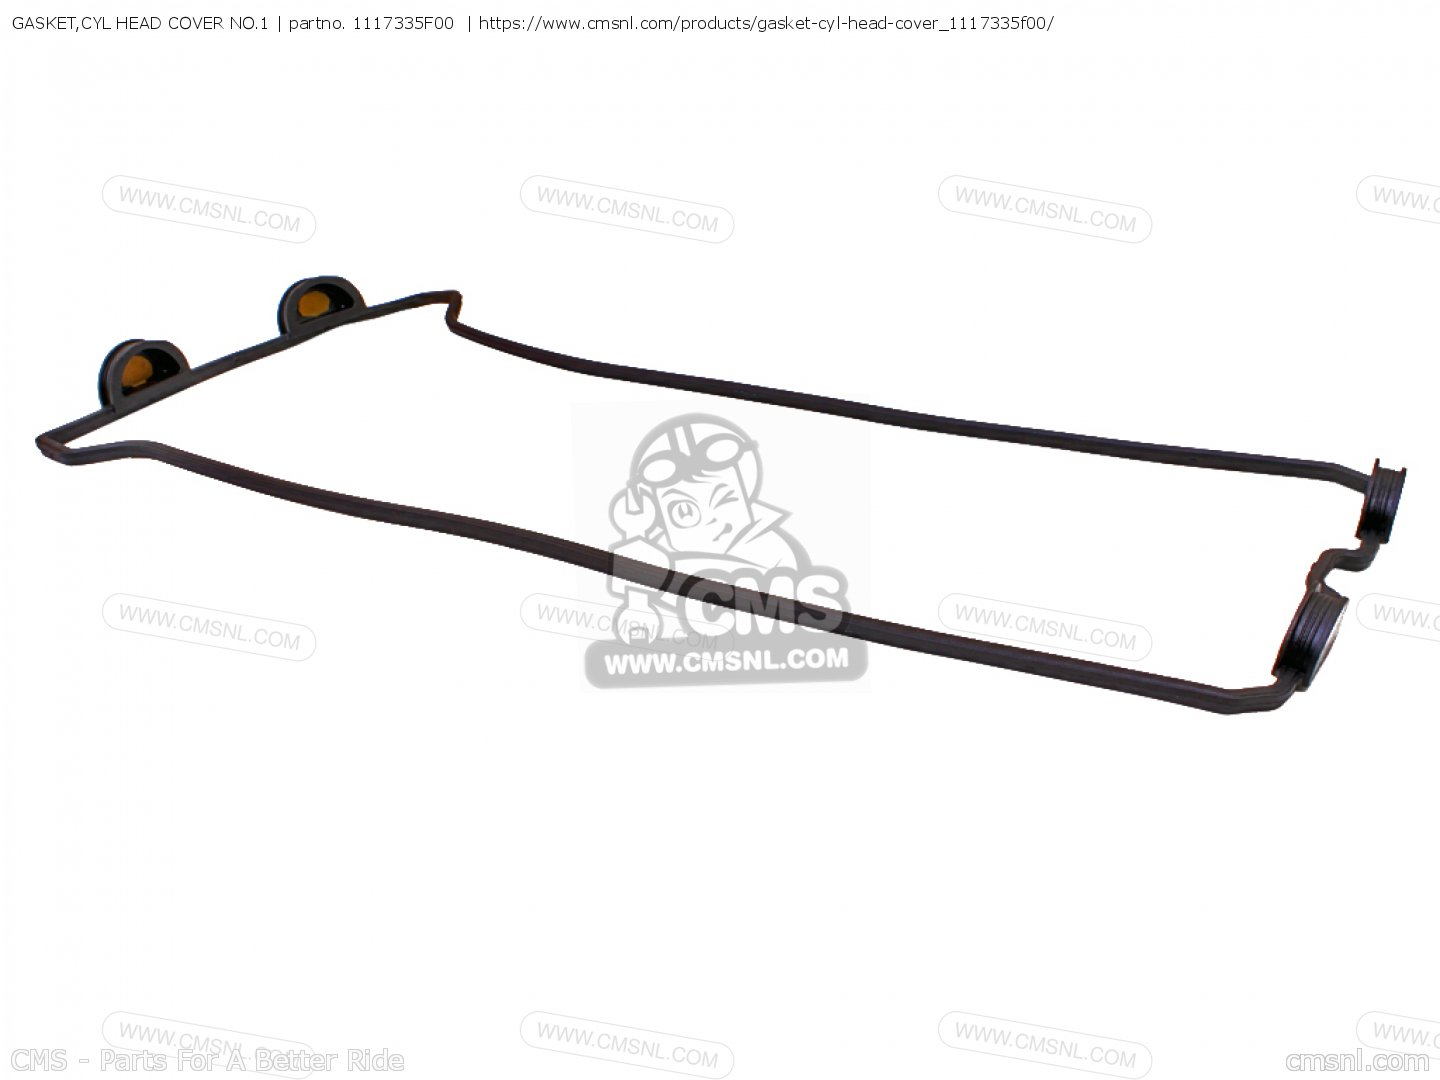 GASKET,CYL HEAD COVER NO.1 (NAS) for GSXR1000 2011 (L1